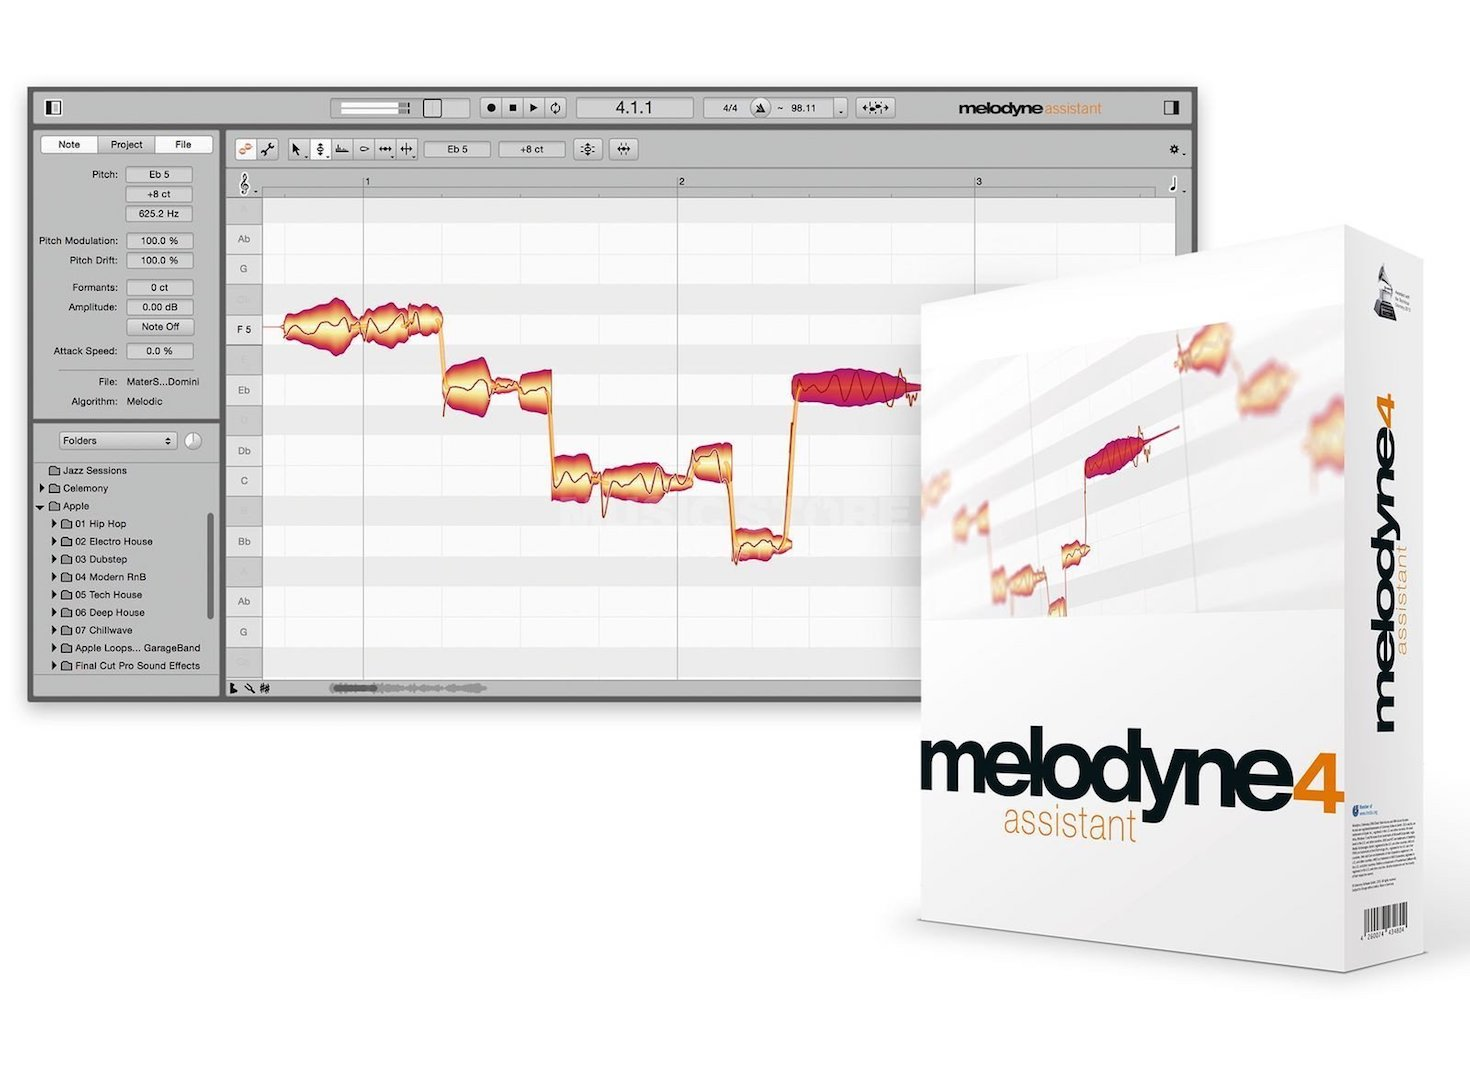 Melodyne_assistant